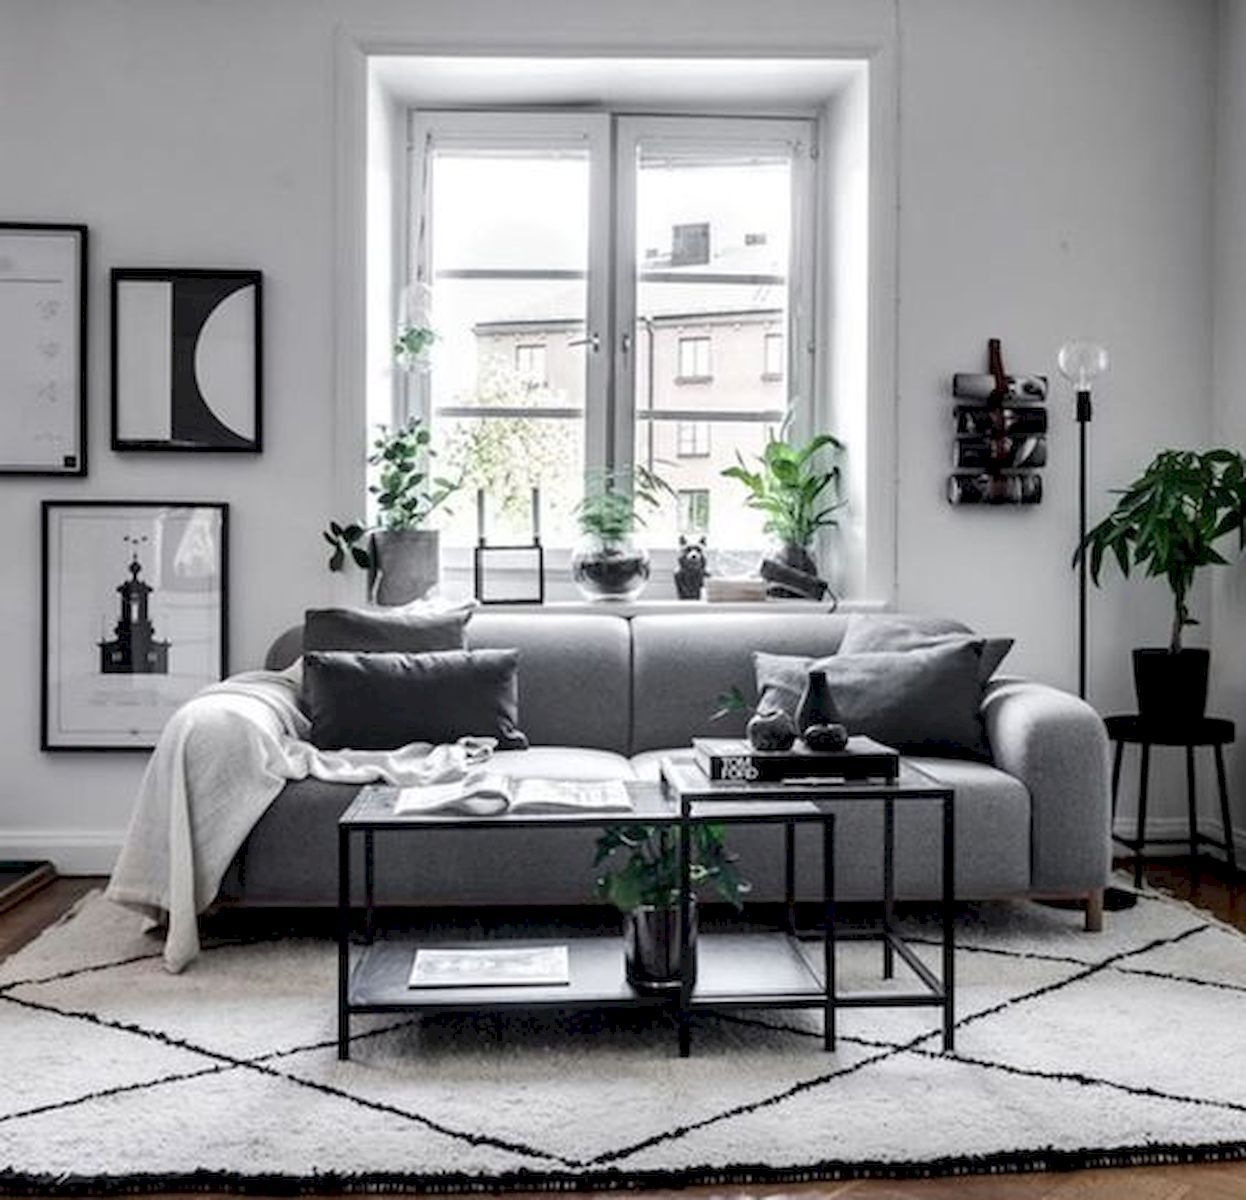 70 Stunning Grey White Black Living Room Decor Ideas And Remodel images